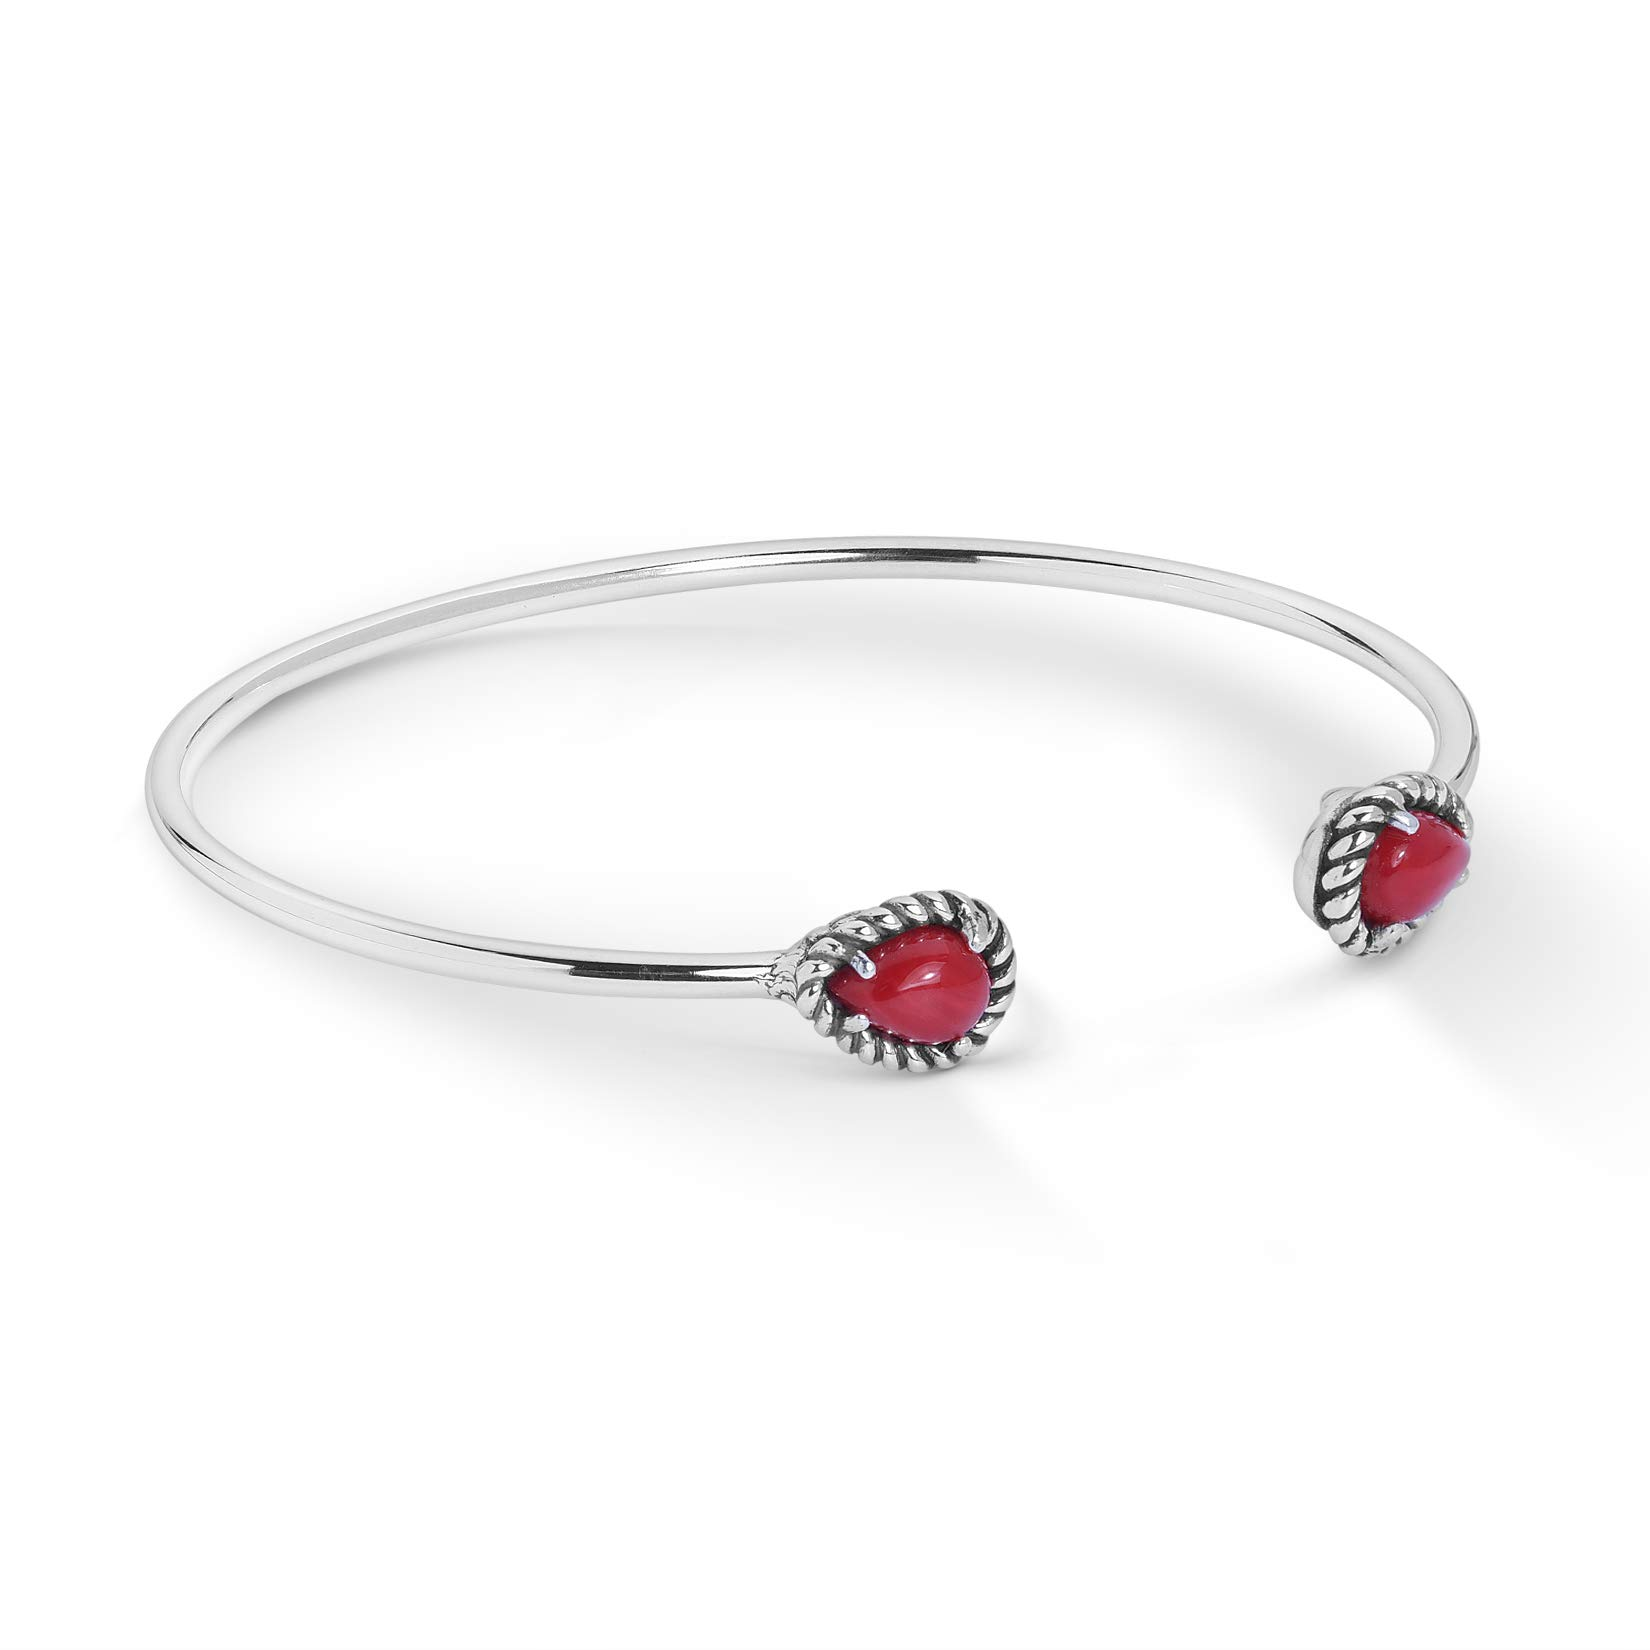 "American West Sterling Silver & Gemstone Slender Adjustable Cuff Bracelet with 1/4"" Teardrop Finials - Choice of Colors"